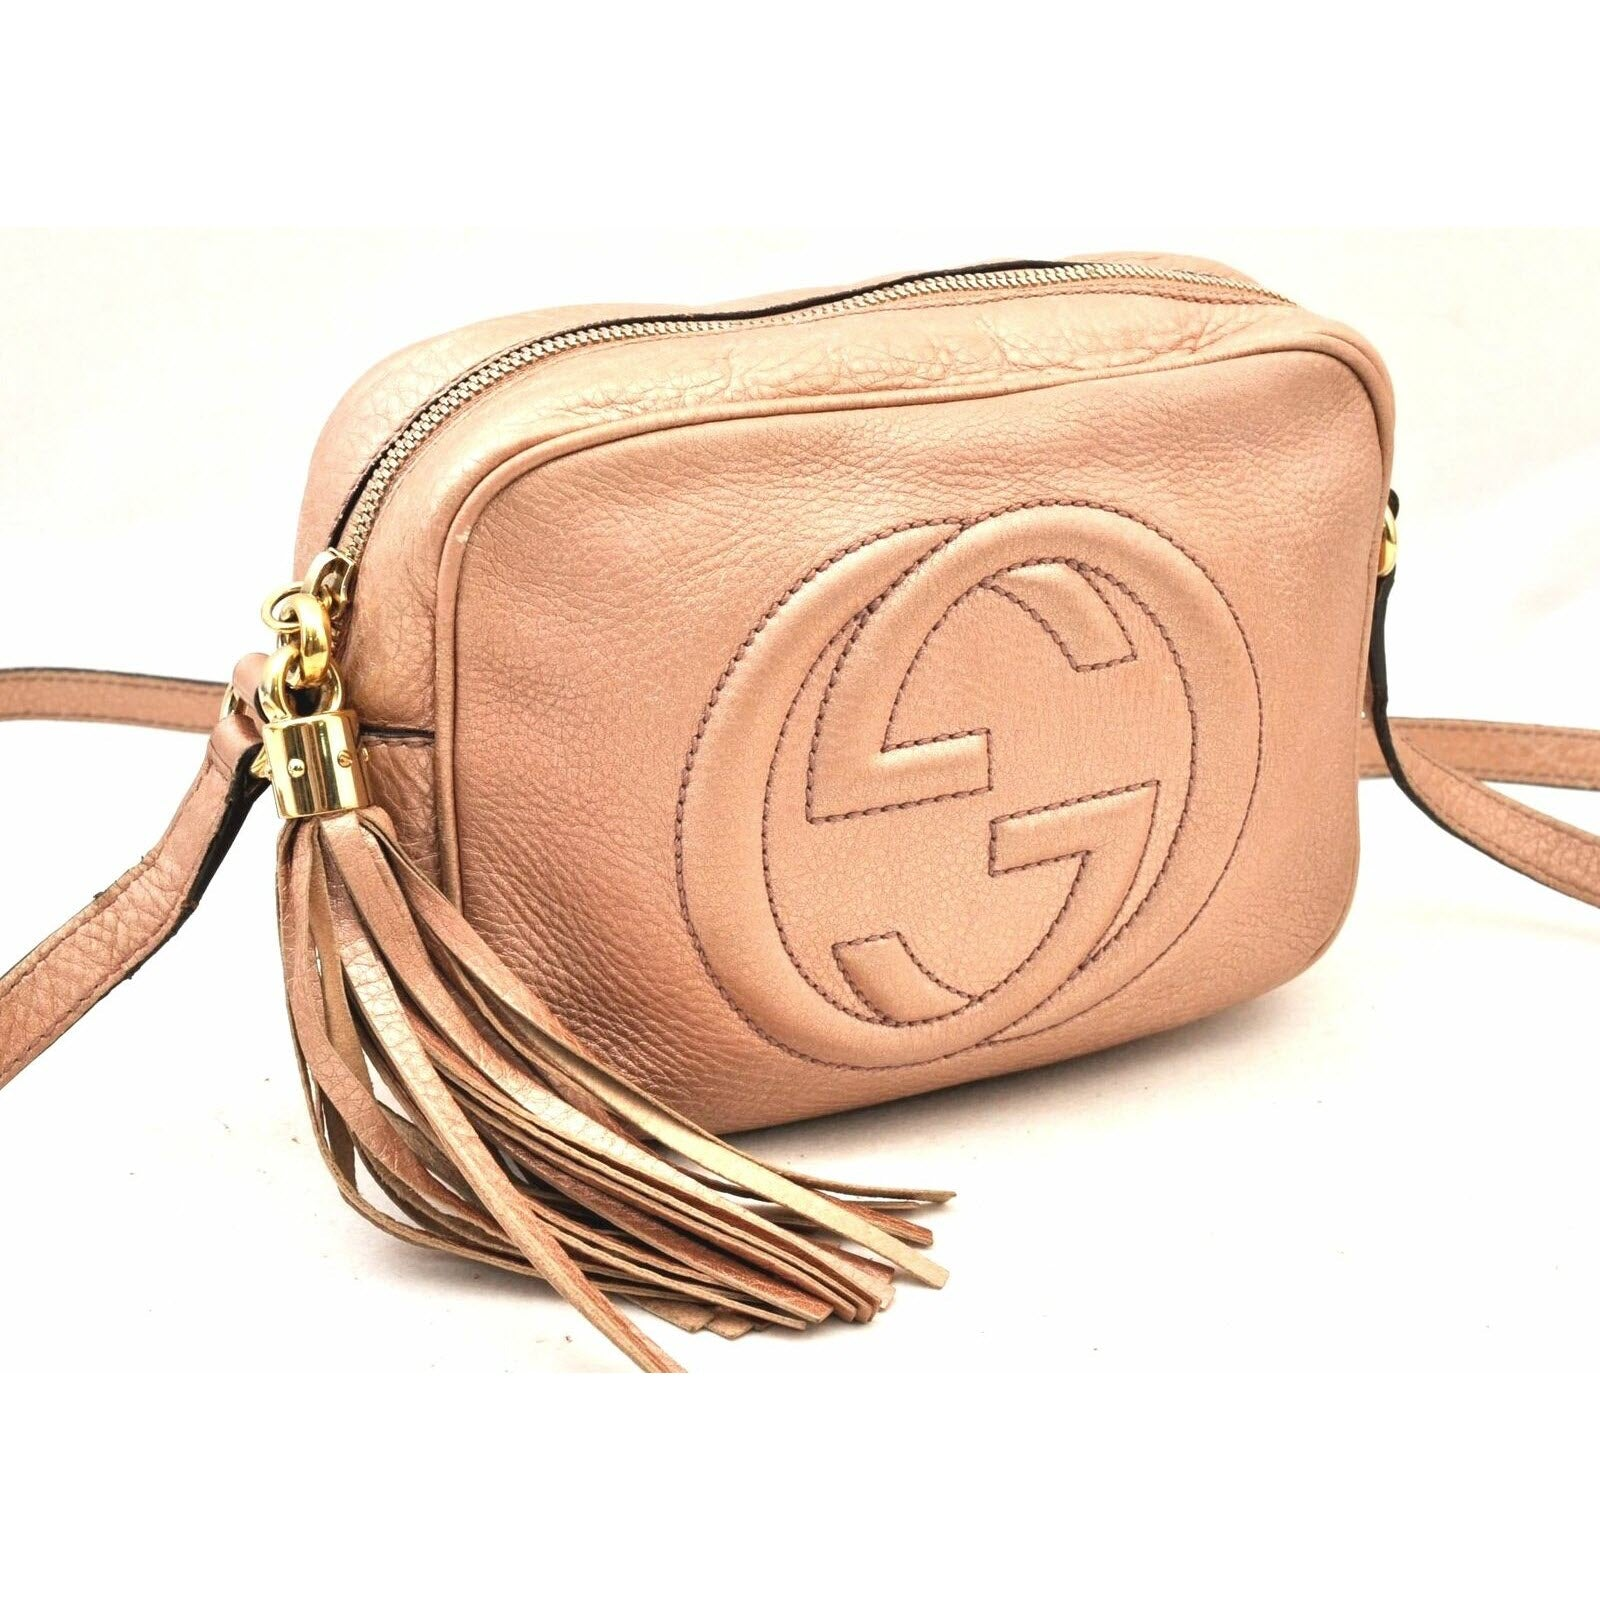 Gucci Soho Disco Pebbled Calfskin Small Pink Leather Cross Body Bag